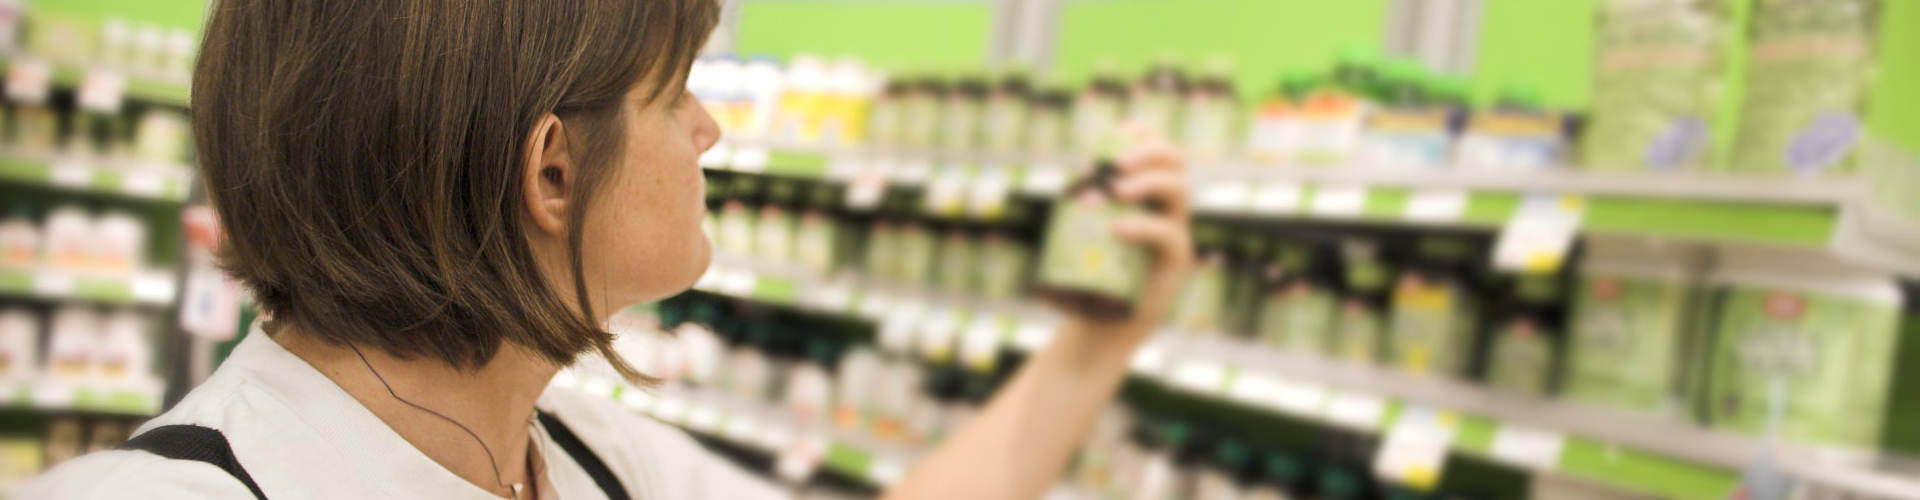 Woman shopping and looking at health products in drugstore